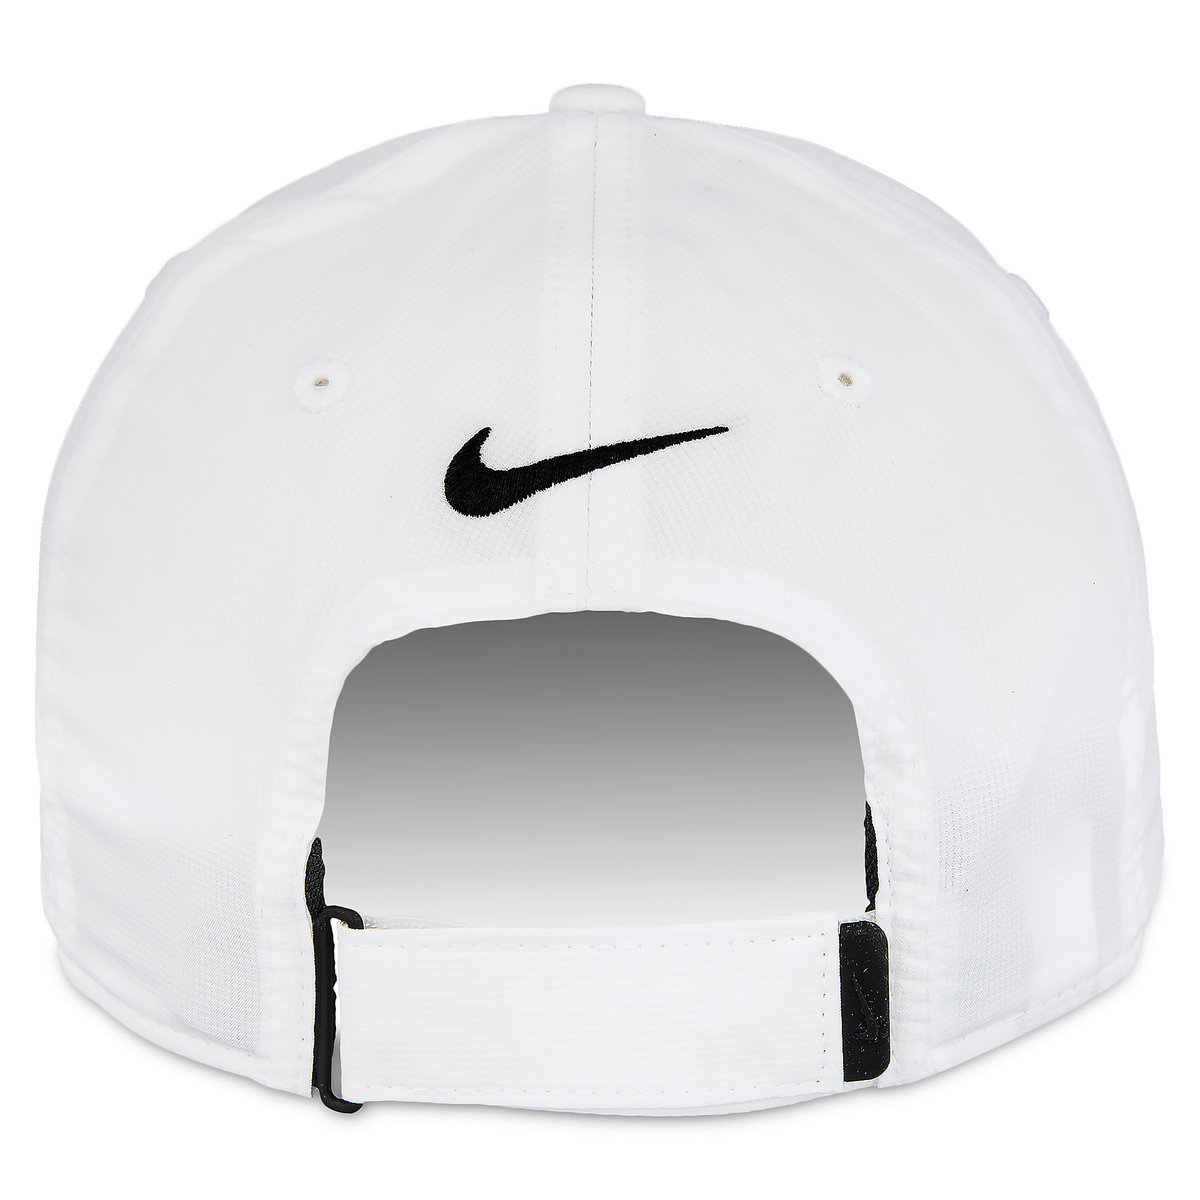 a125f701 Mickey Mouse Silhouette Baseball Hat by Nike - White | shopDisney